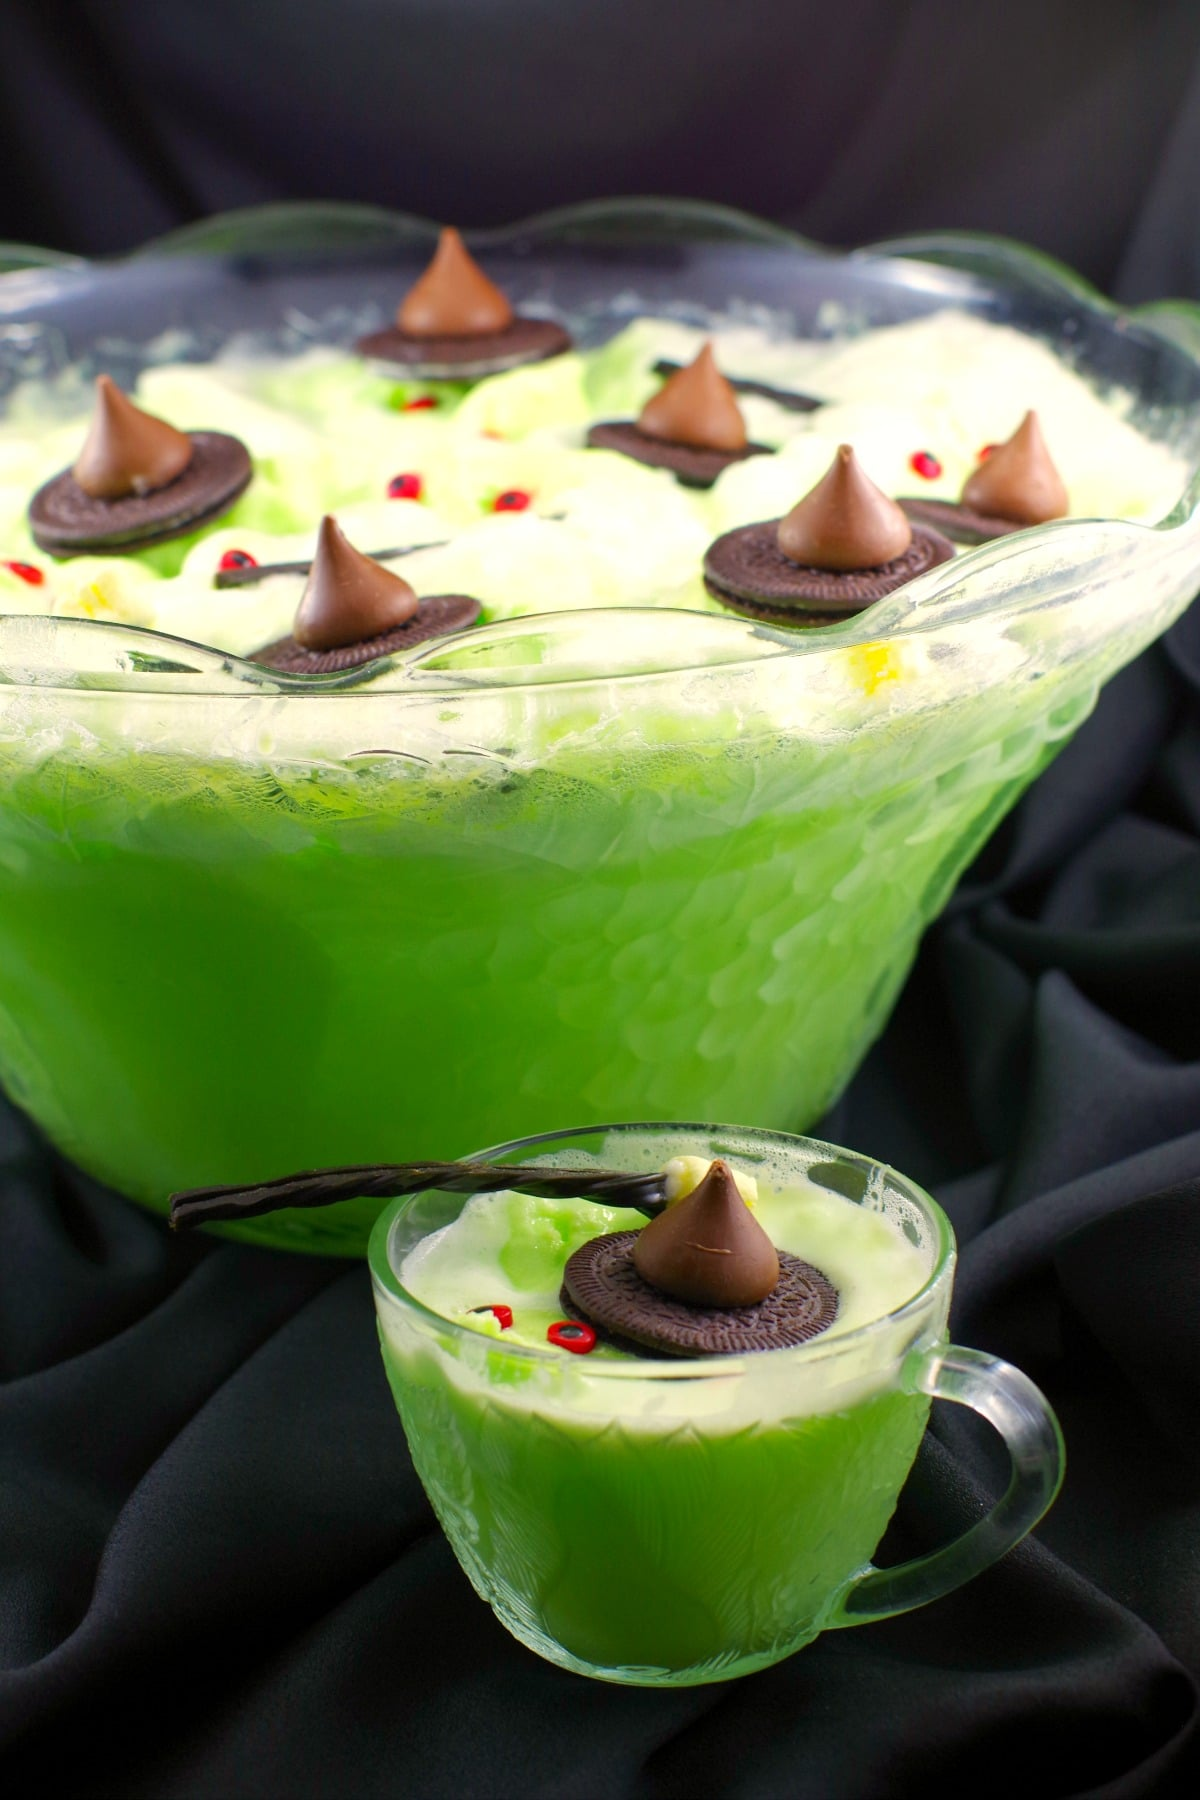 Melting witch Halloween punch for kids - green with cookie witch hats, licorice marshmallow brooms and candy eyes